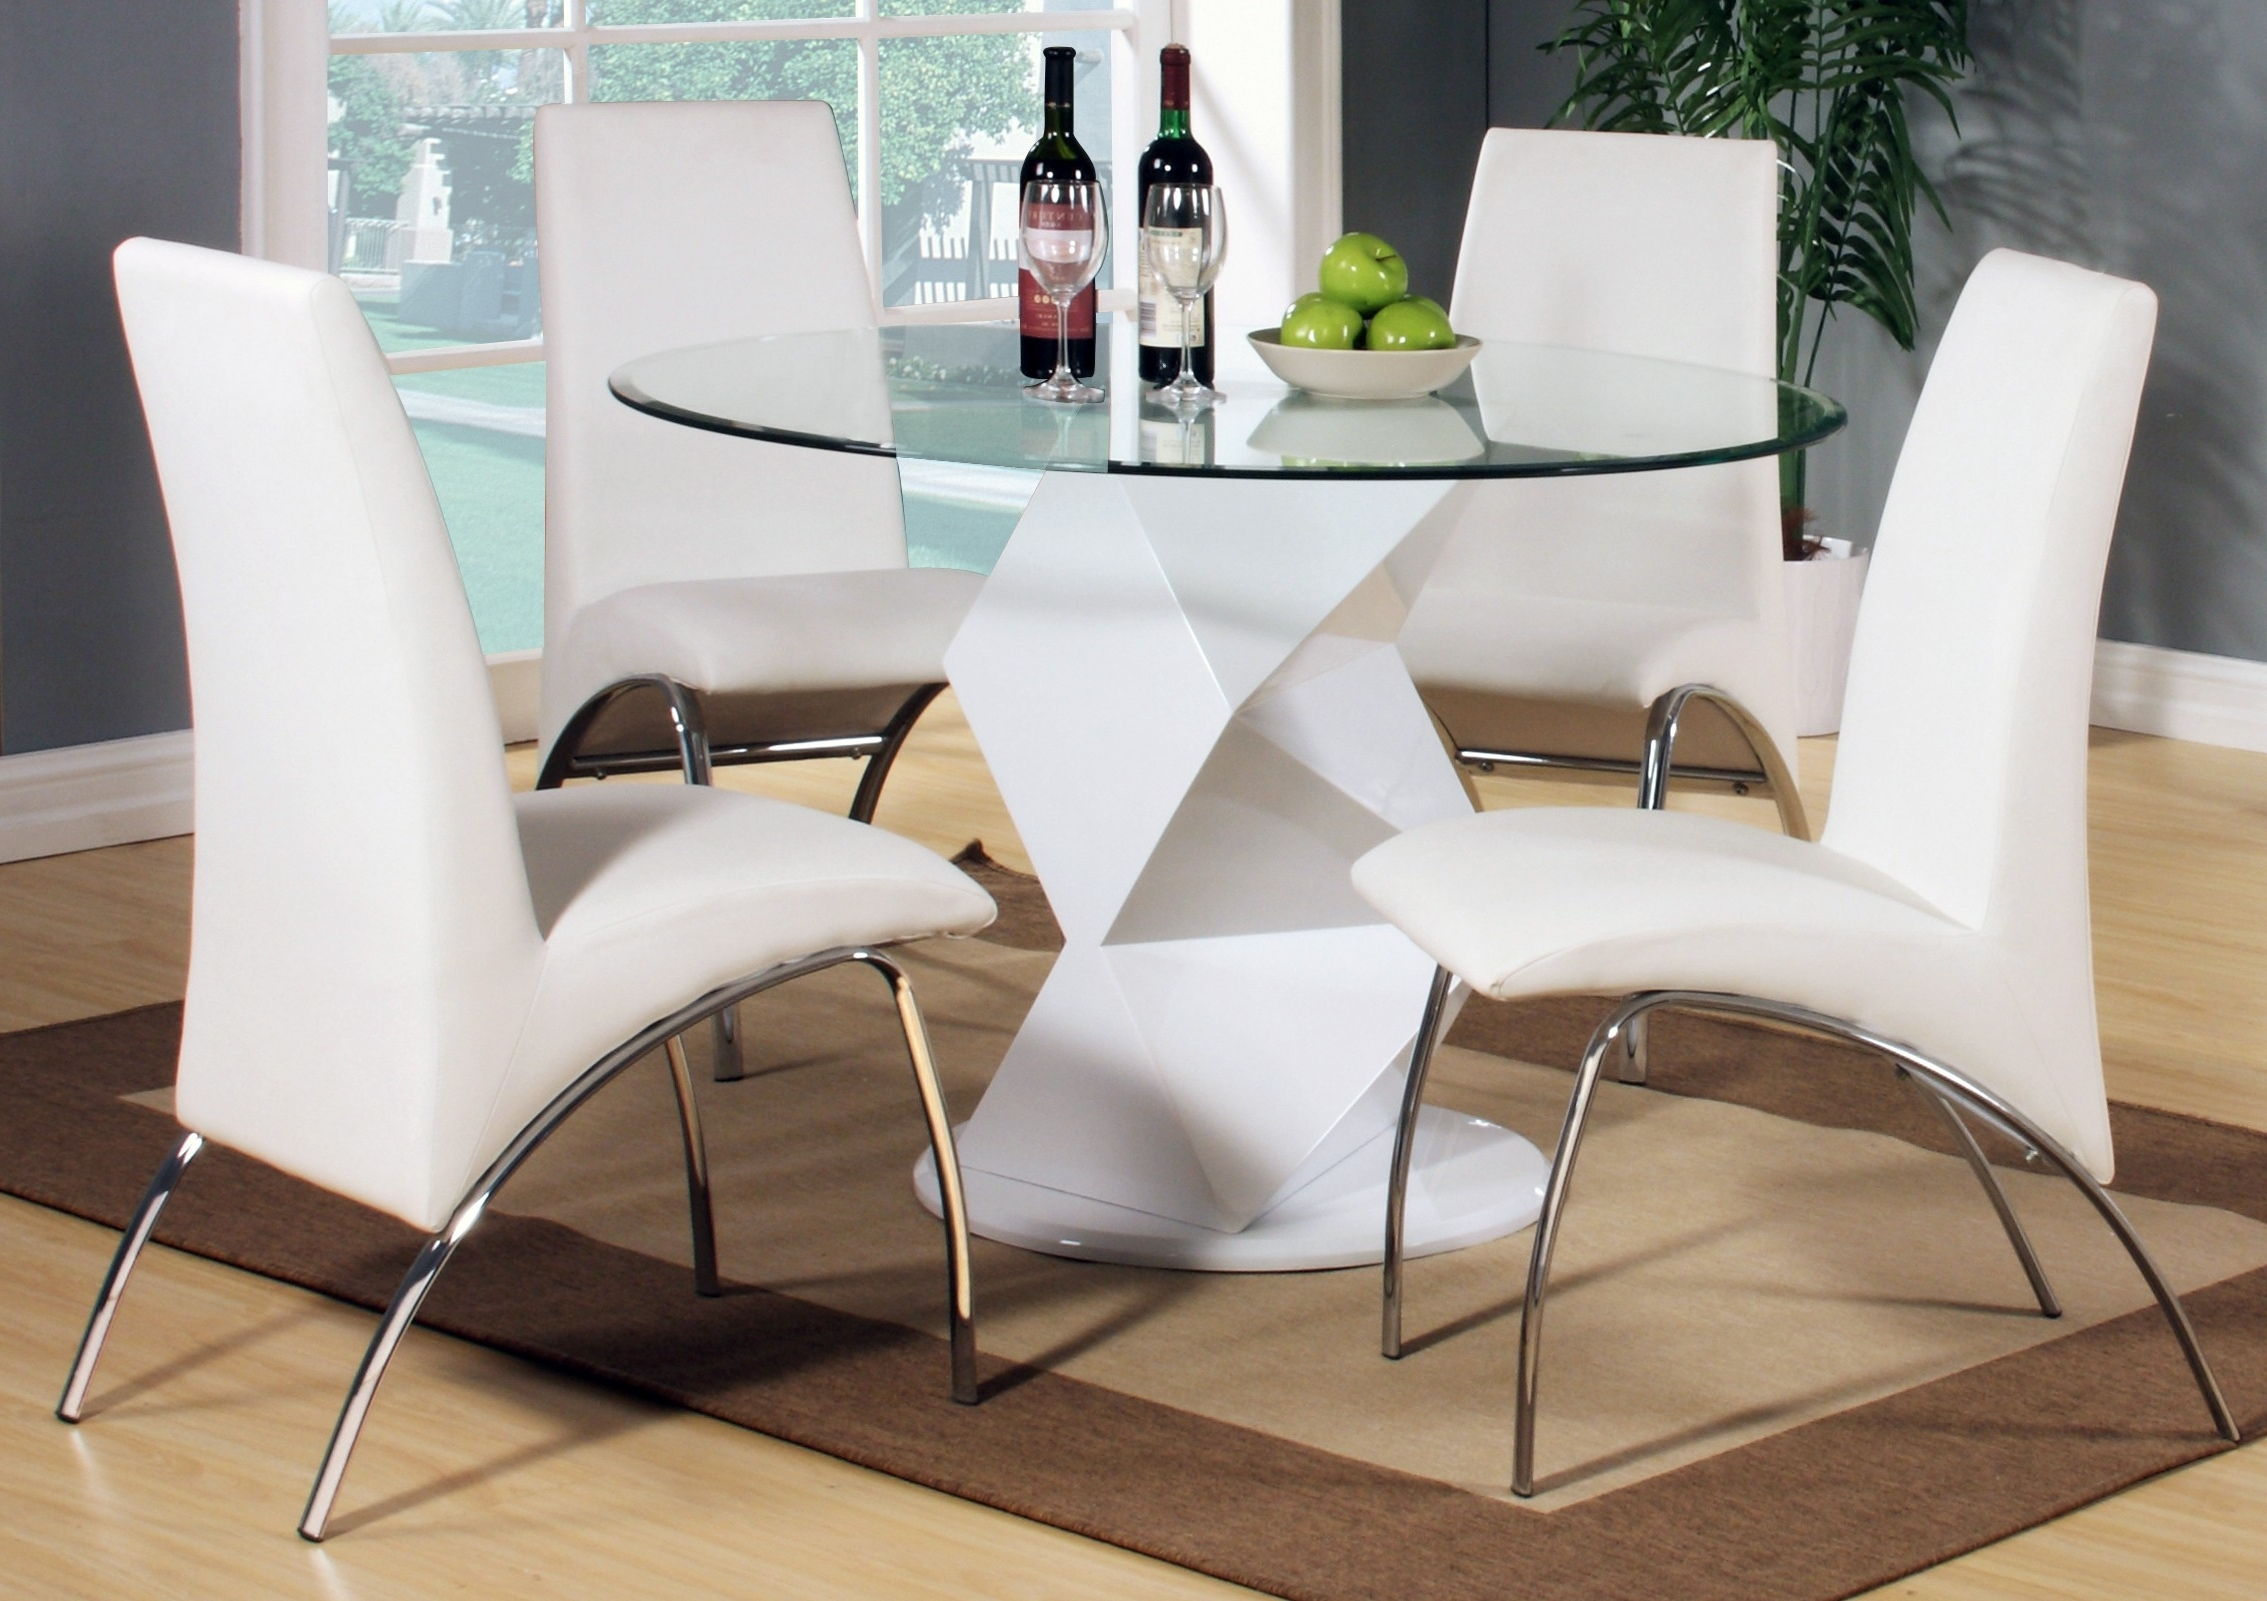 Well Liked High Gloss Round Dining Tables Regarding Finn White High Gloss Round Dining Table Set 4 Seater (View 12 of 25)